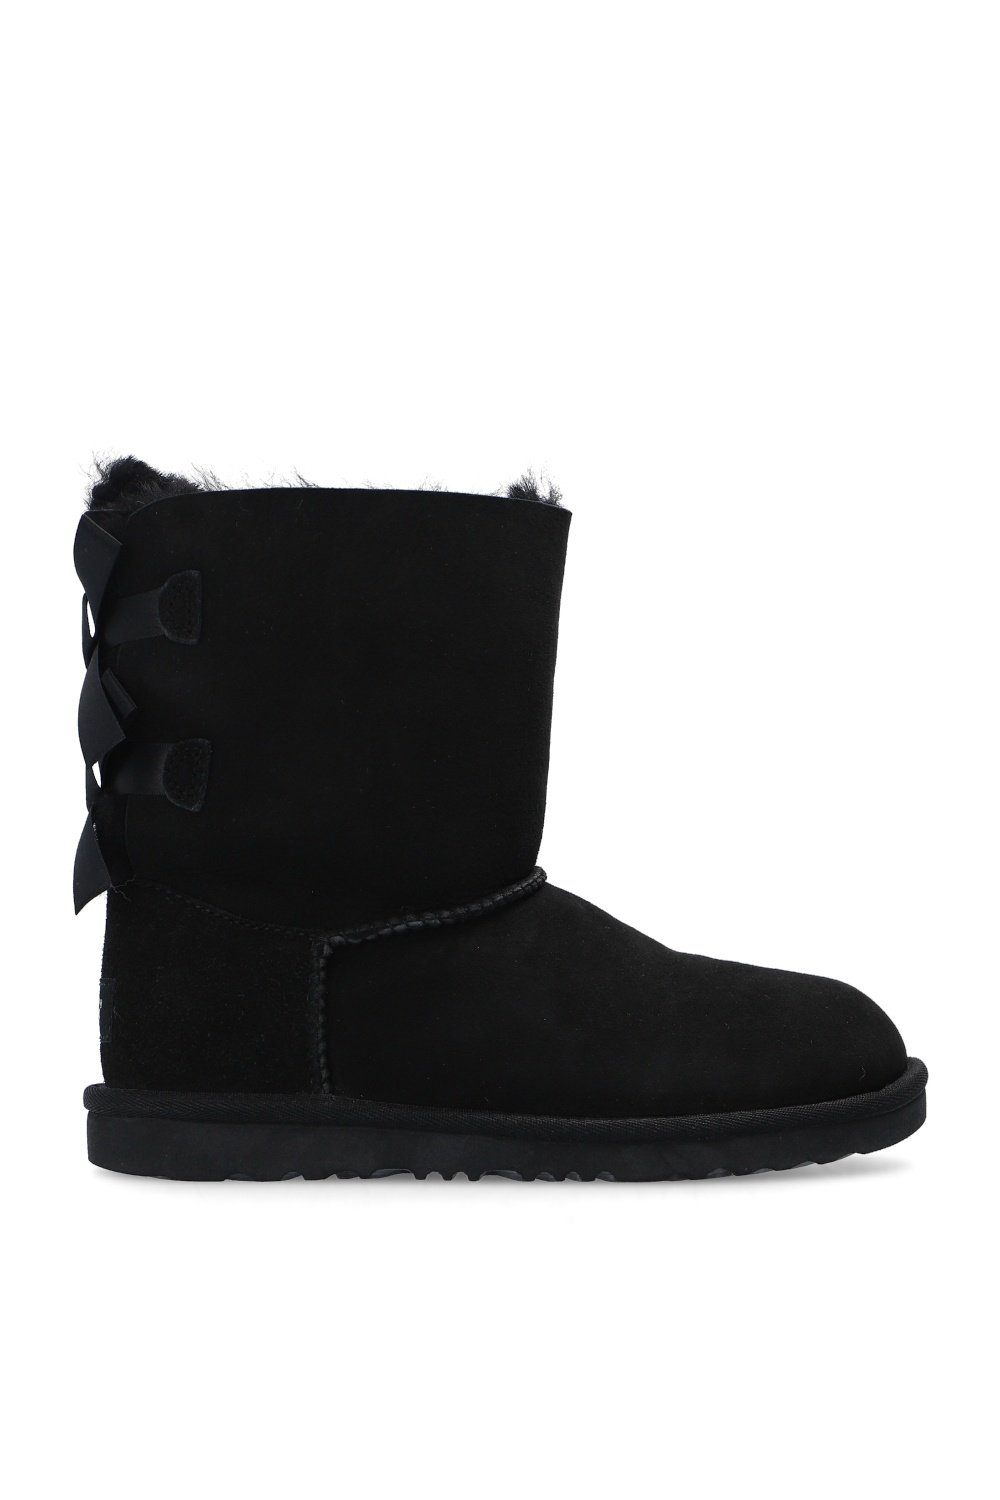 UGG Kids 'K Bailey Bow II' suede snow boots